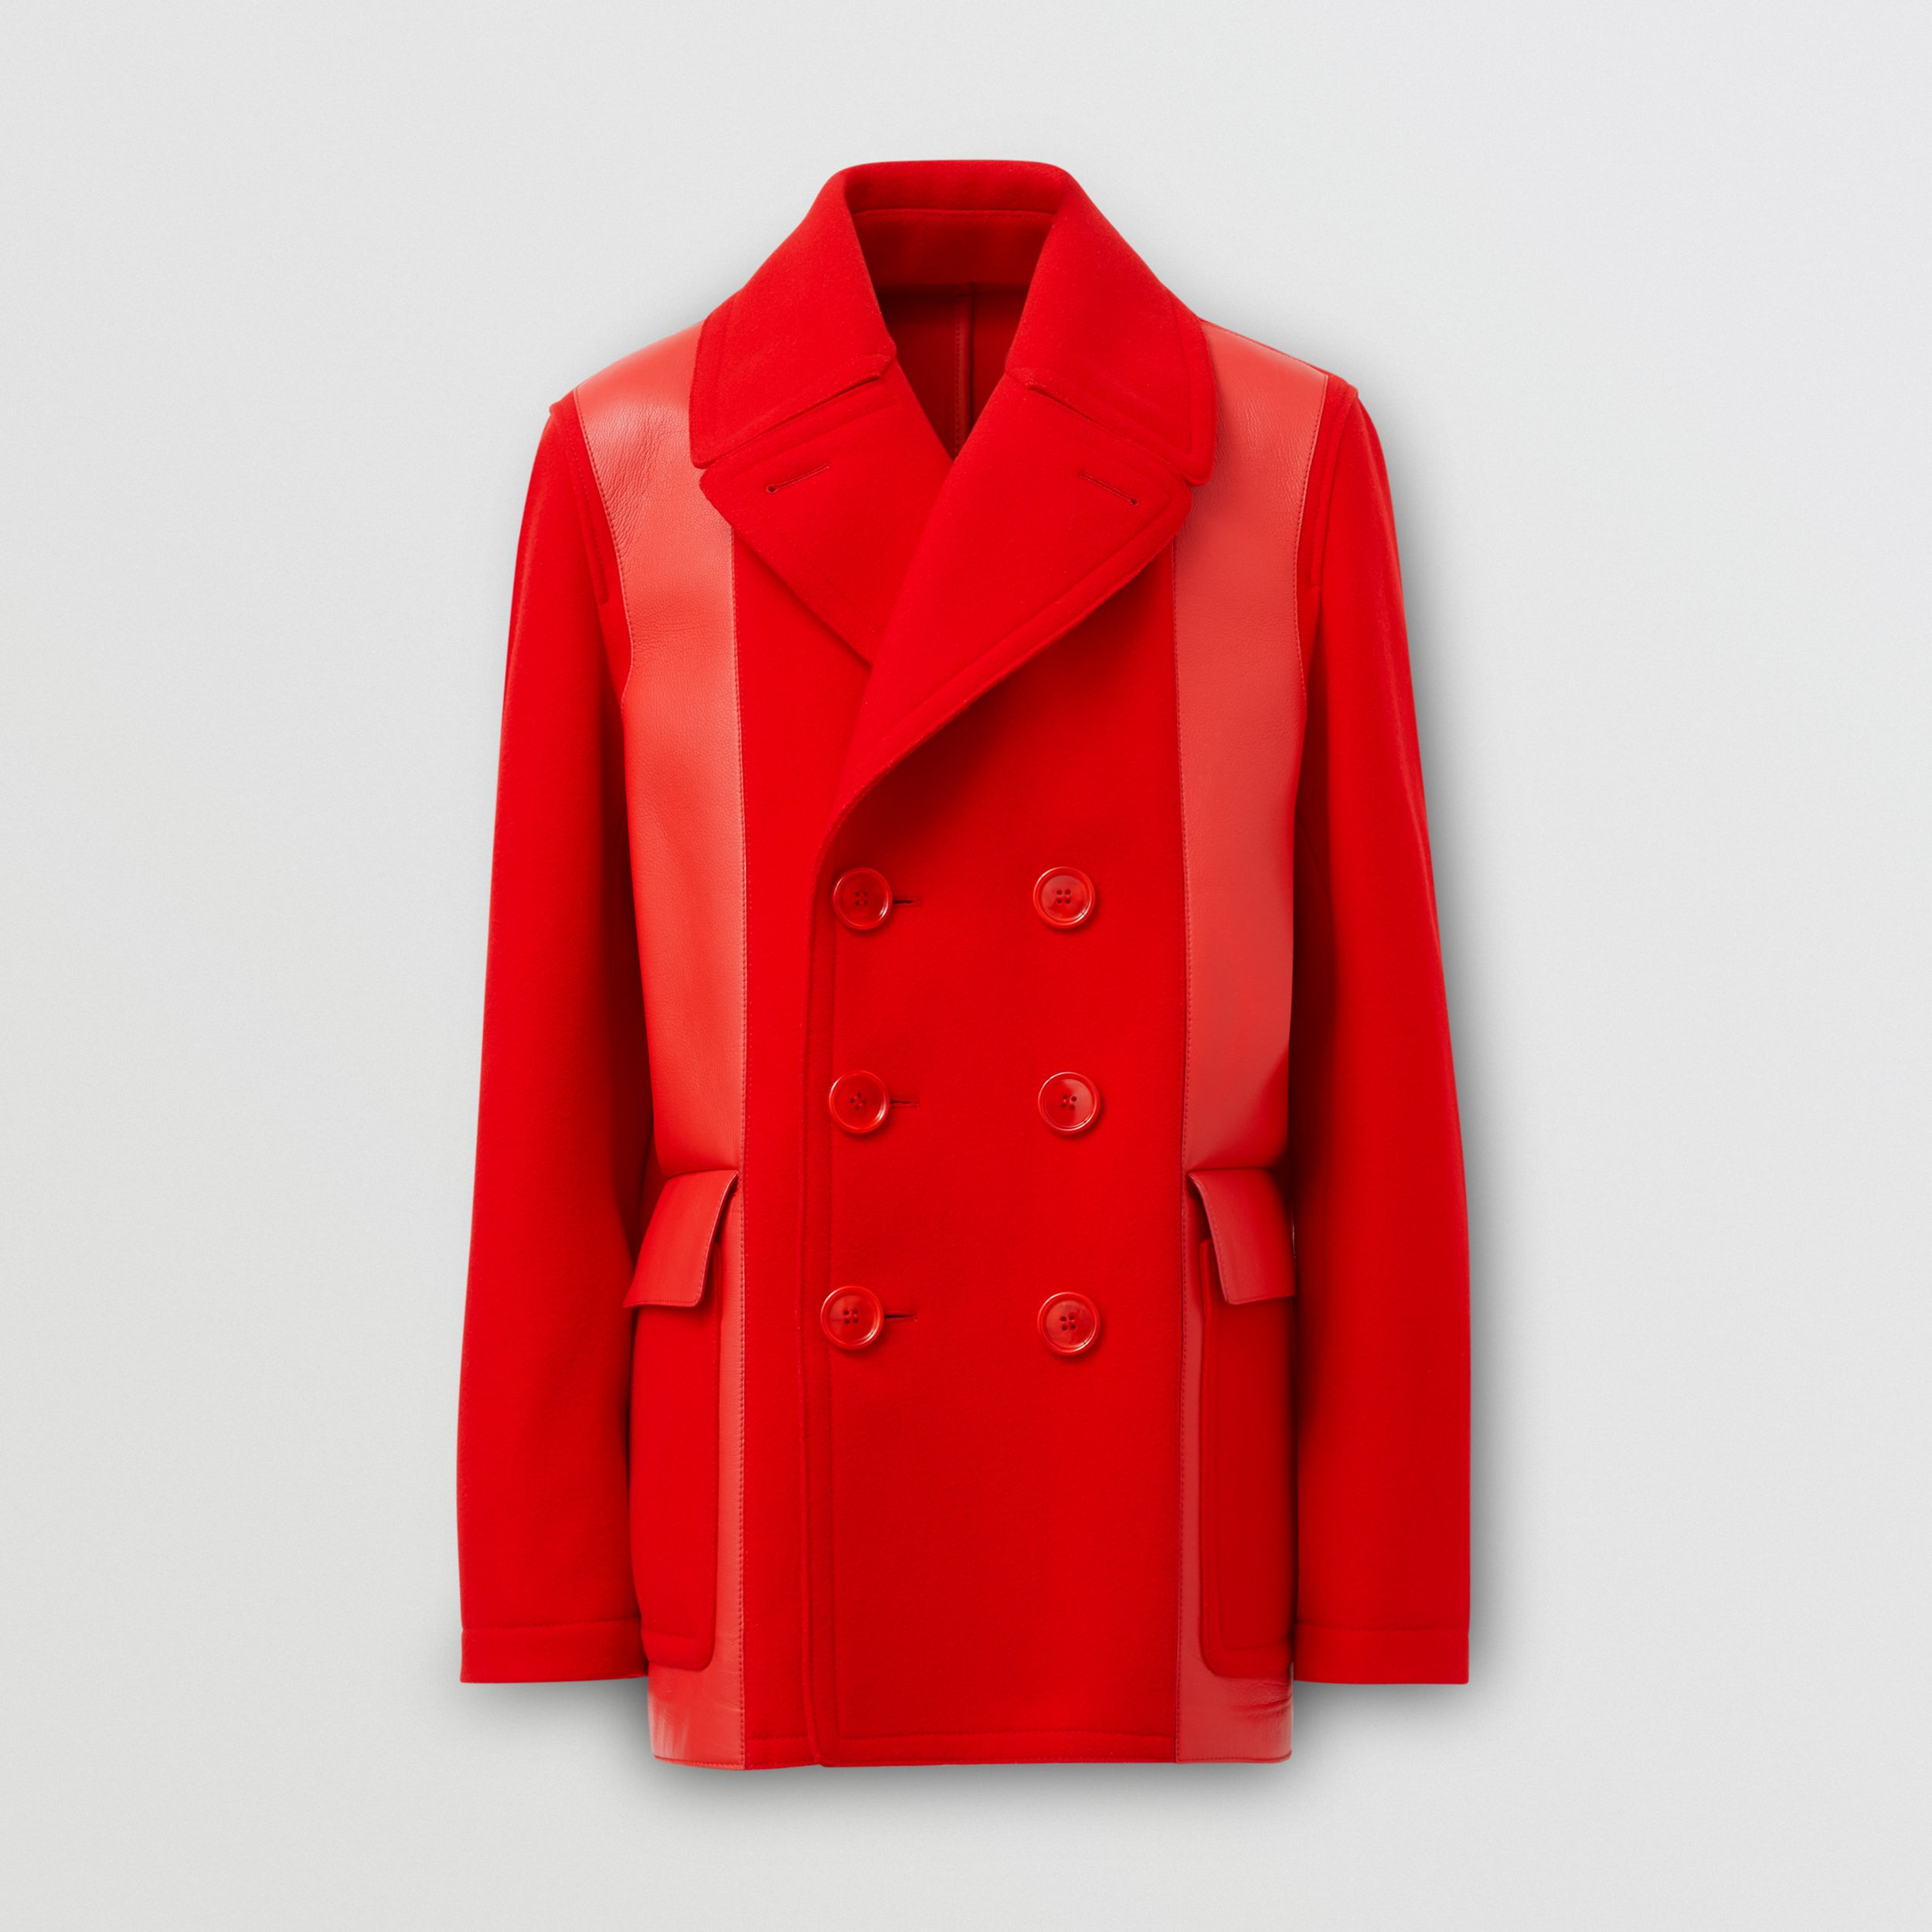 Lambskin Panel Technical Wool Pea Coat in Bright Red - Men | Burberry - 4